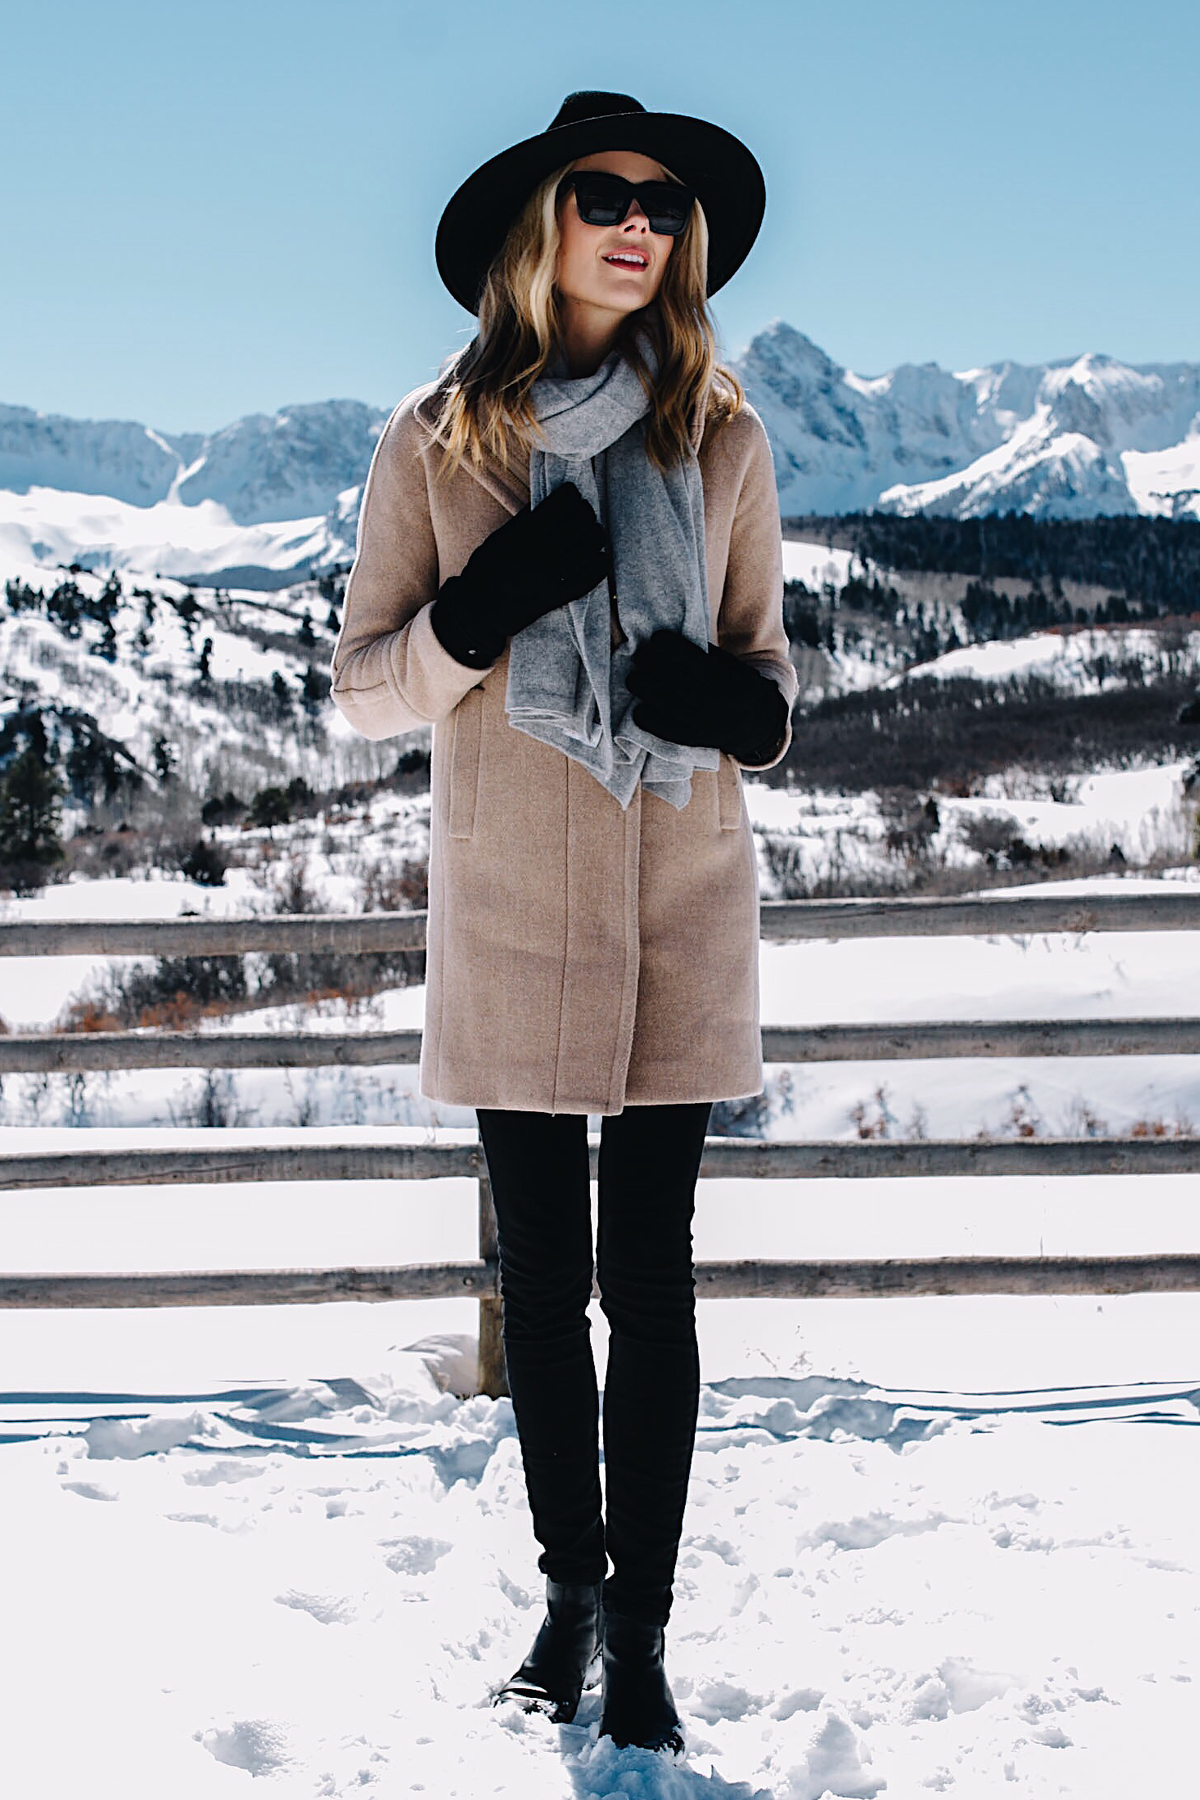 Telluride CO Snow Mountains Blonde Woman Wearing Grey Scarf Camel Coat Black Skinny Jeans Black Wool Hat Black Gloves Fashion Jackson Dallas Blogger Fashion Blogger